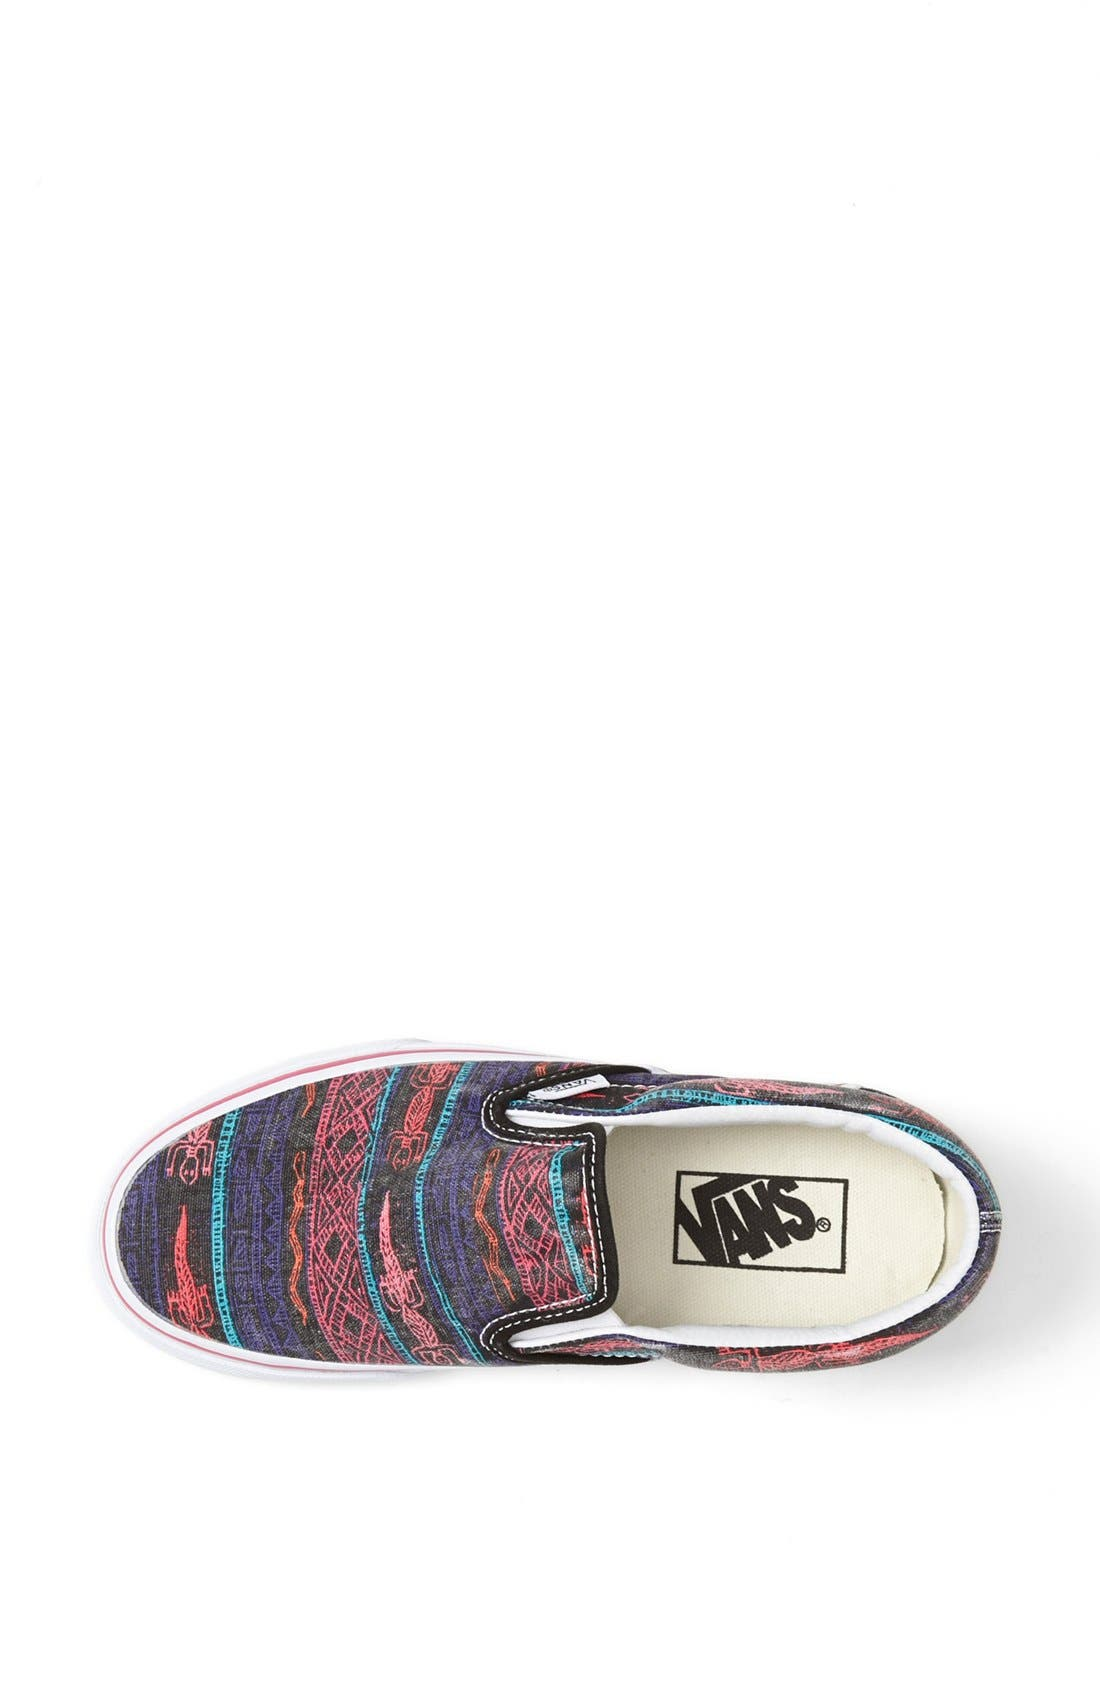 Alternate Image 3  - Vans 'Van Doren' Slip-On Sneaker (Women)